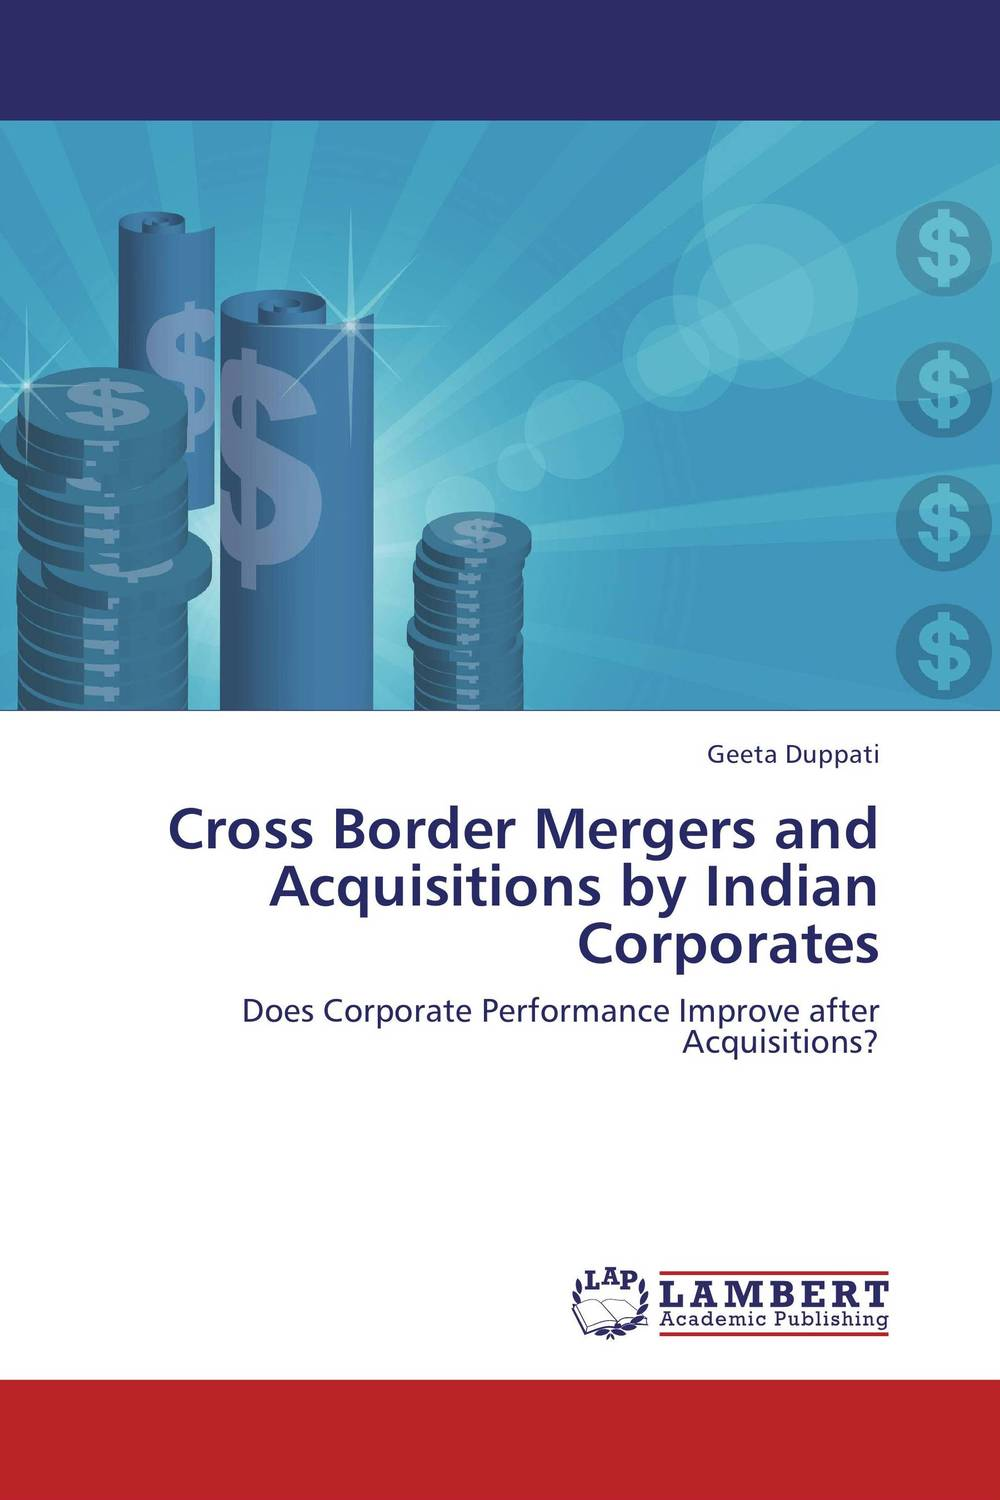 Cross Border Mergers and Acquisitions by Indian Corporates цена и фото